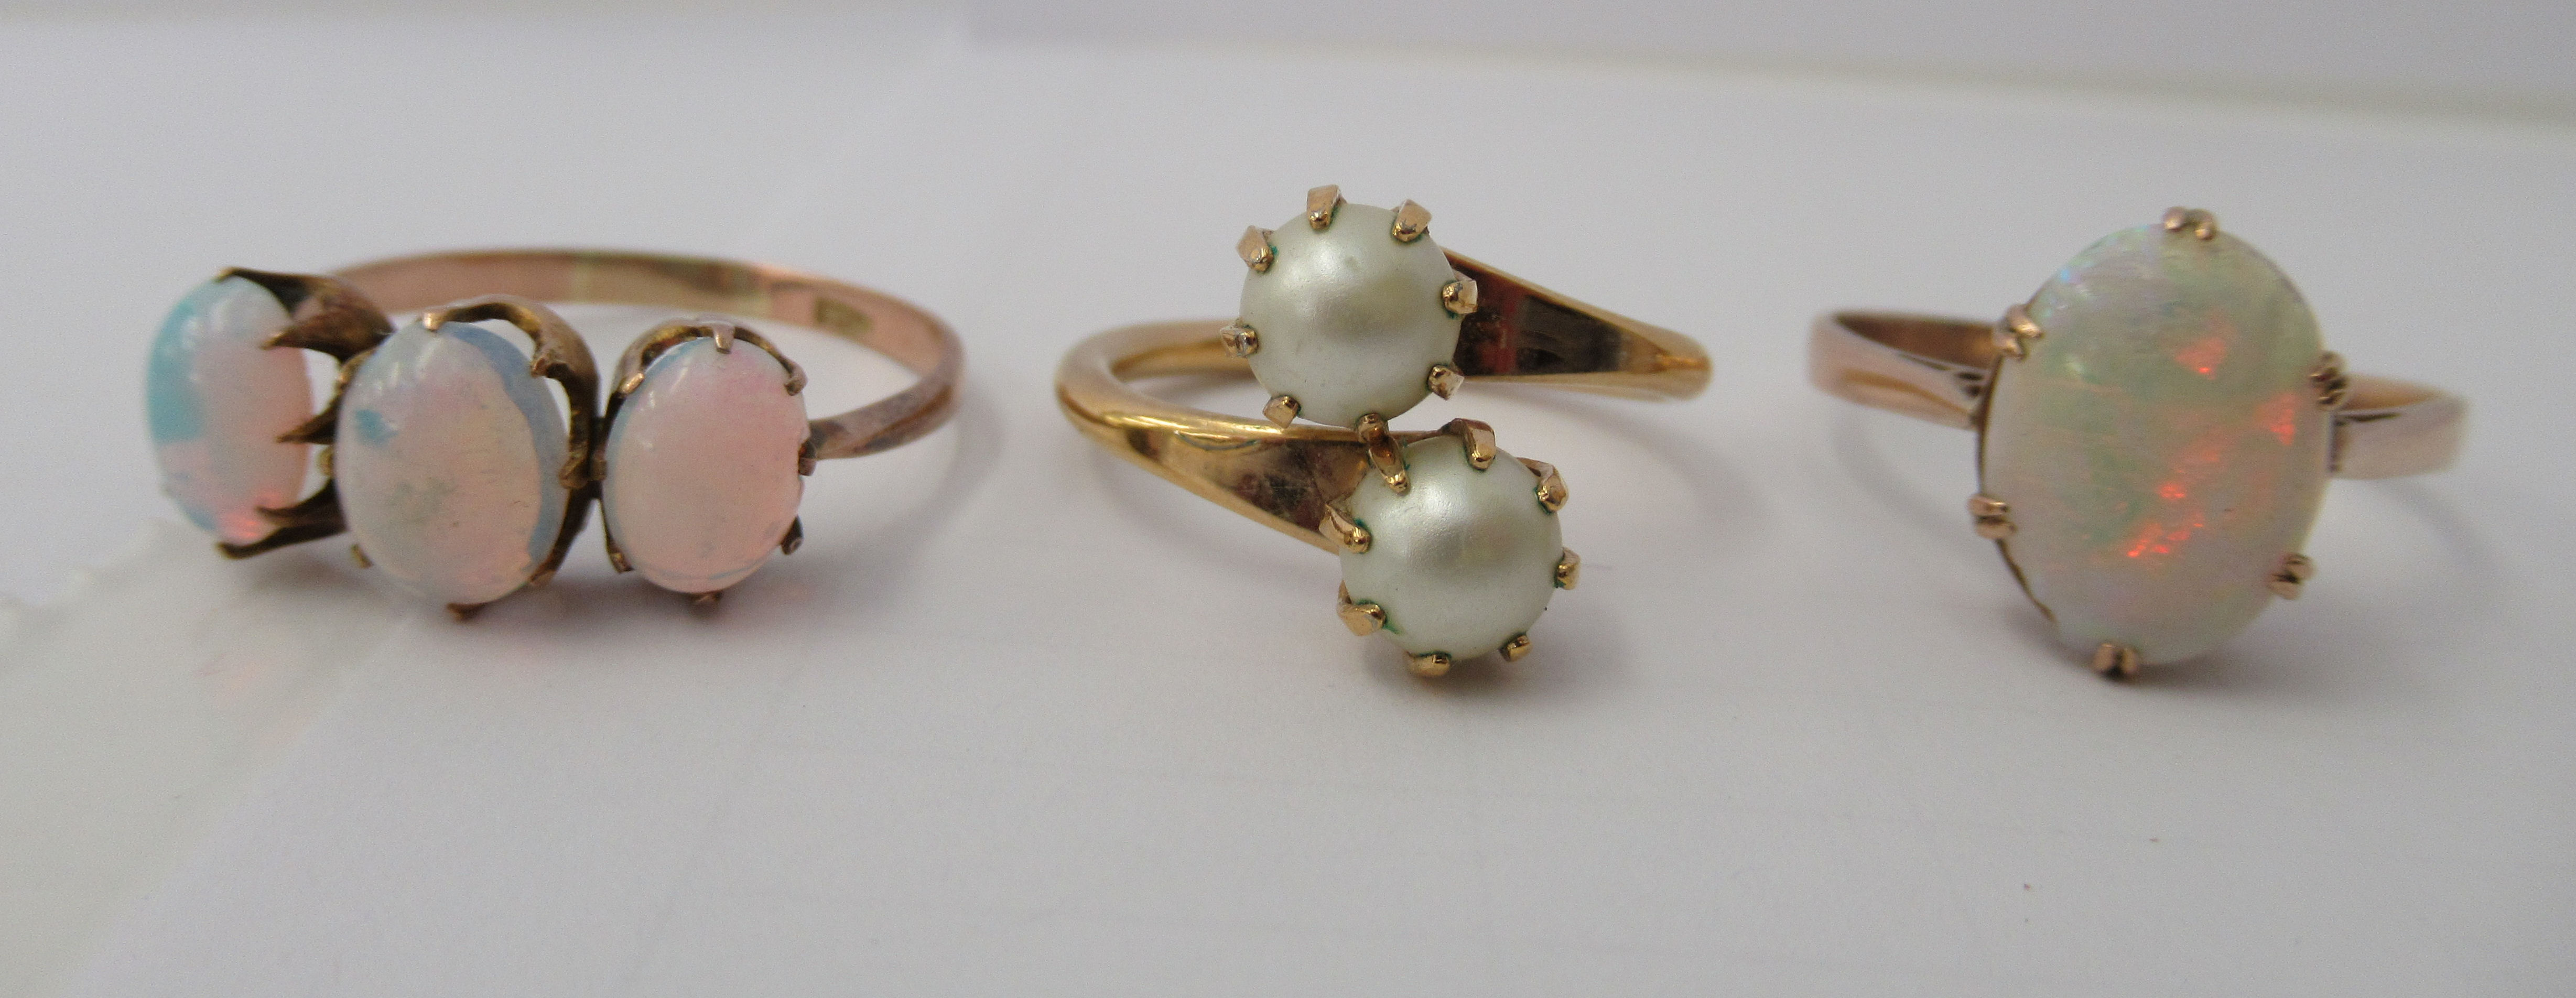 Three yellow metal rings and a white metal coloured ring, set with simulated pearls, opals and other - Image 3 of 5